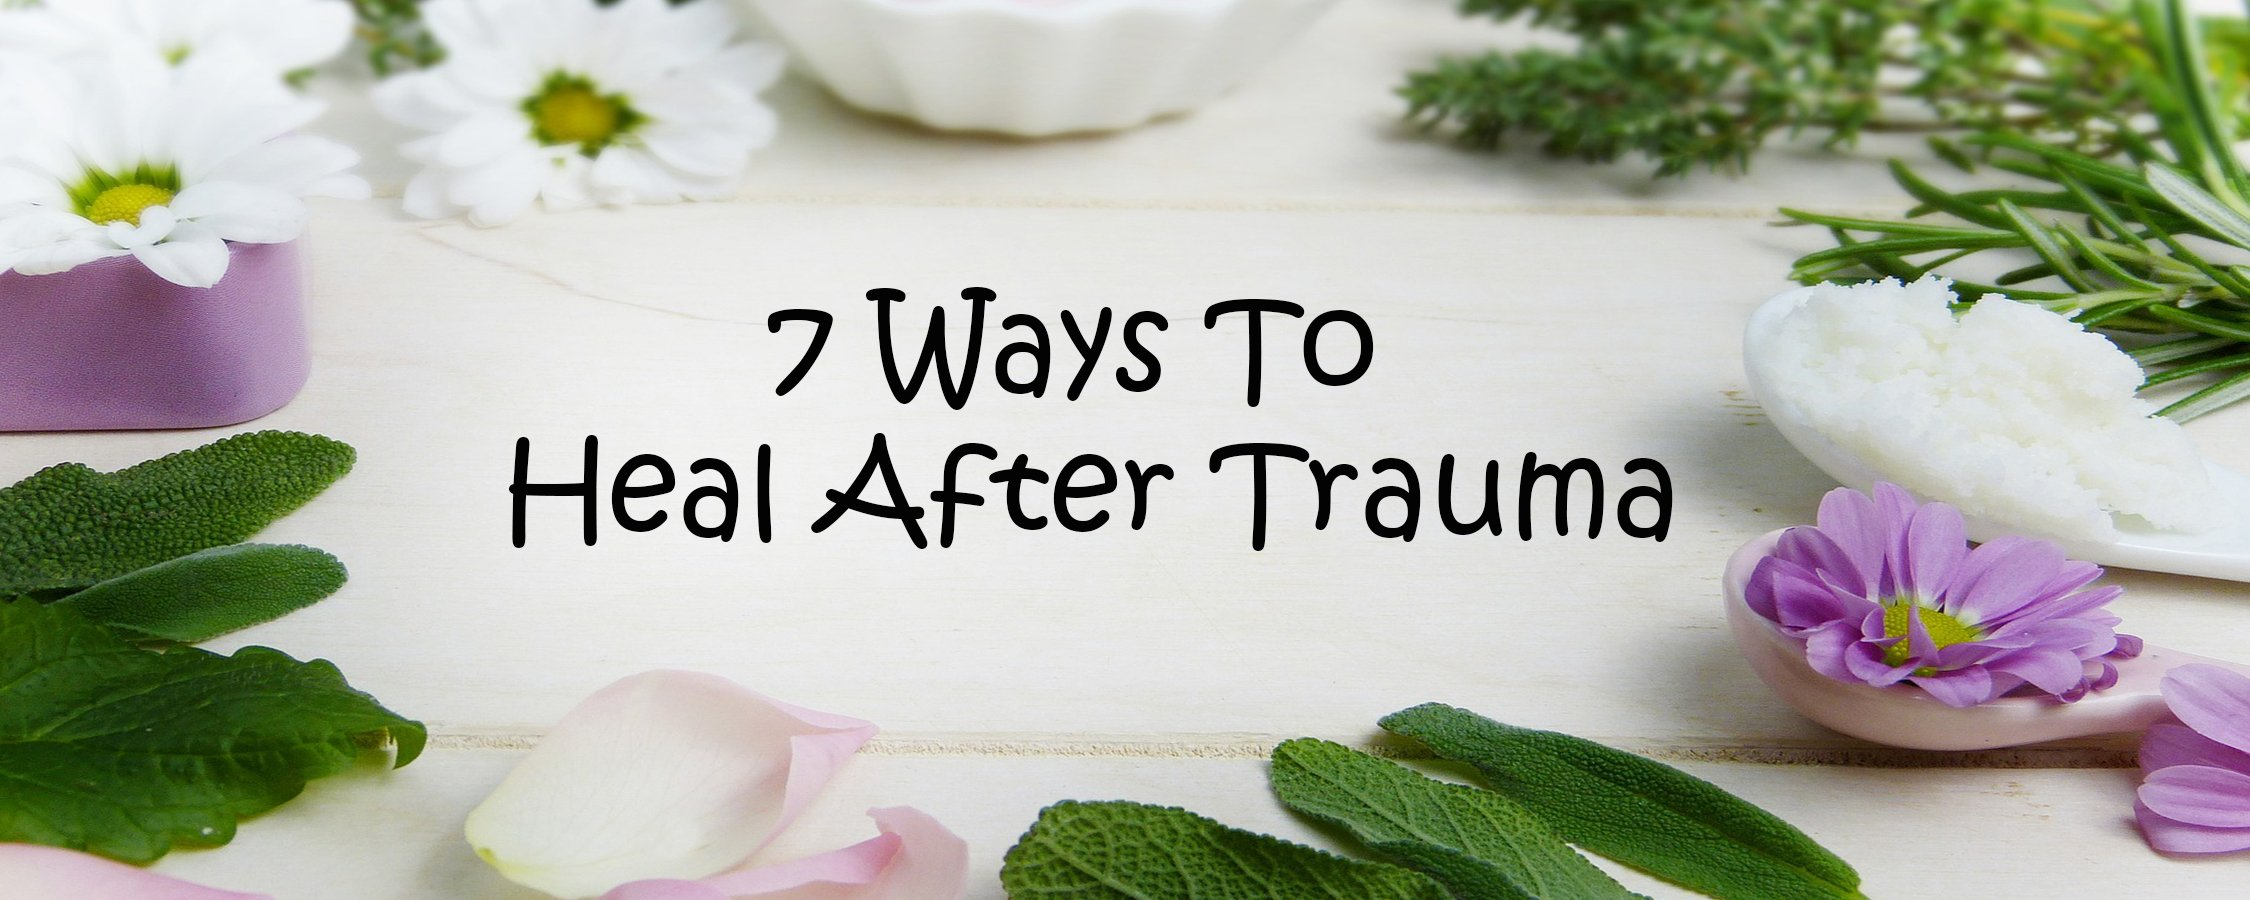 7 Ways to Heal After Trauma